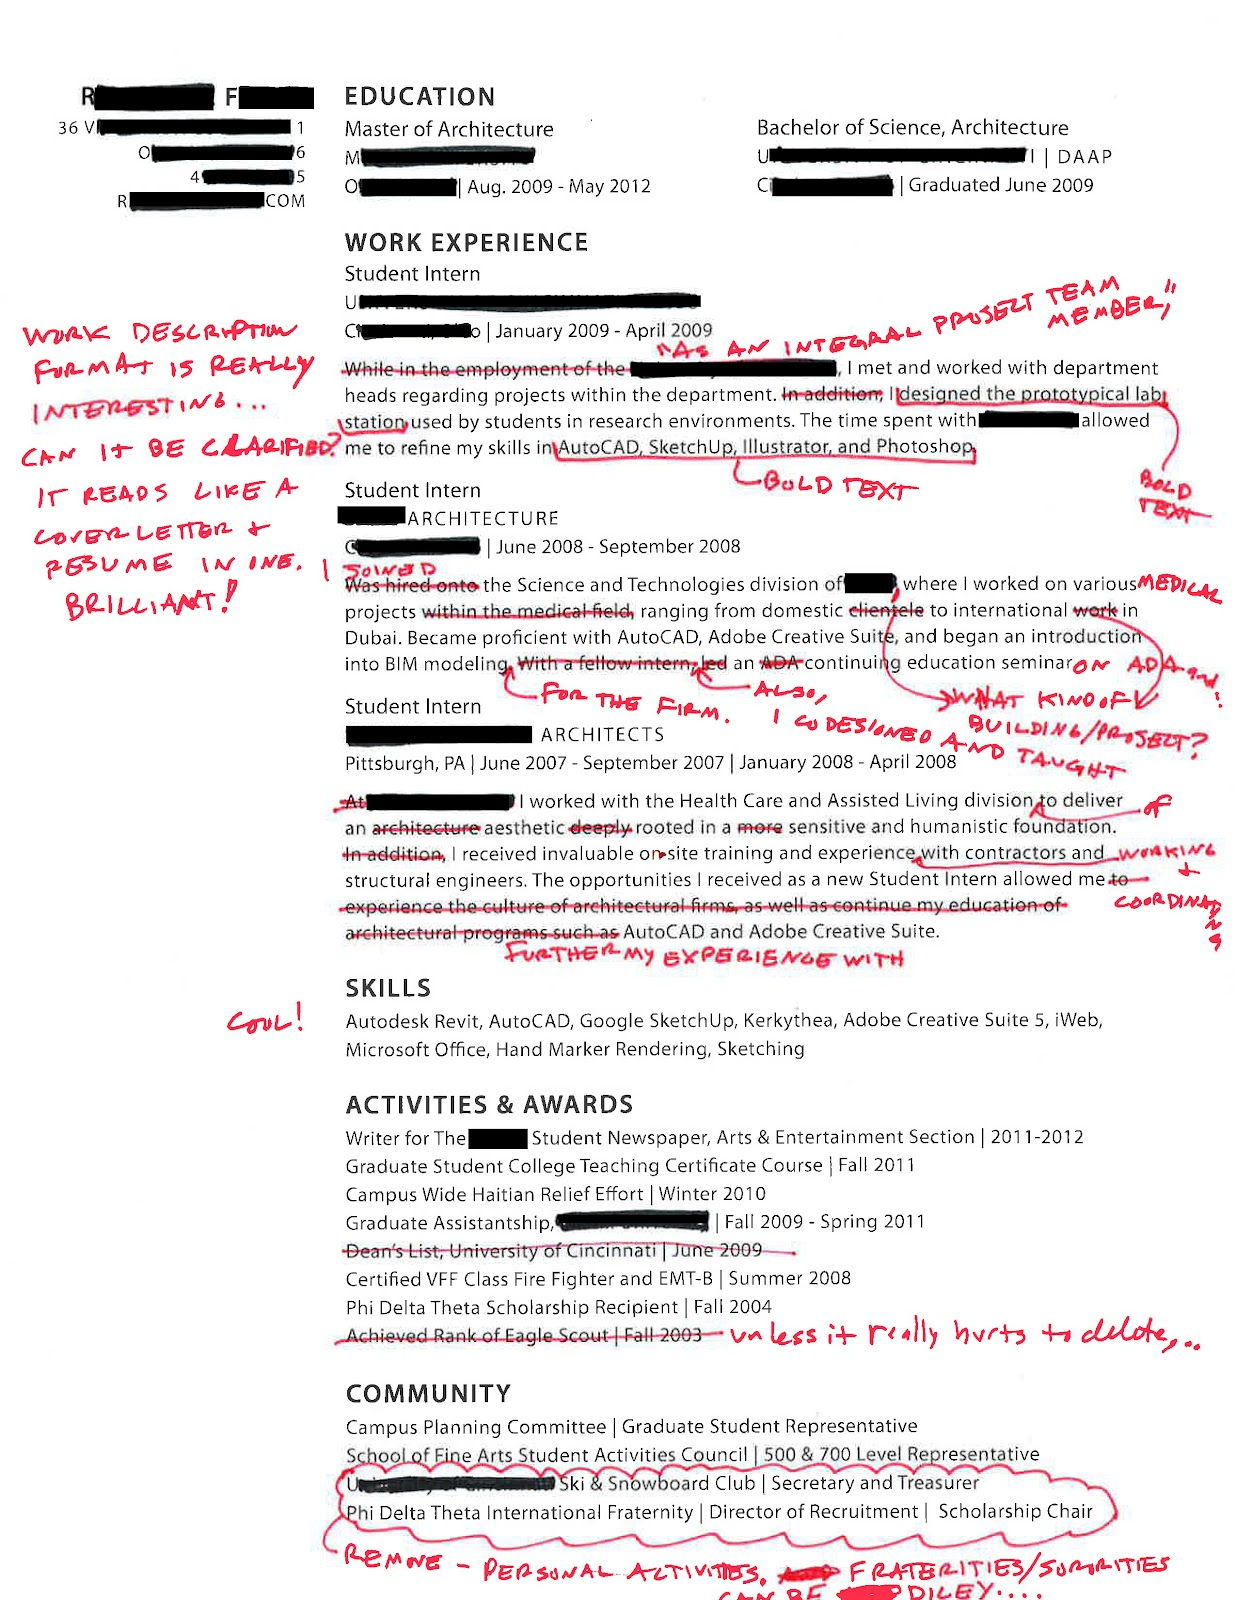 Intern 101 Redlined Resumes the importance of narrative and the